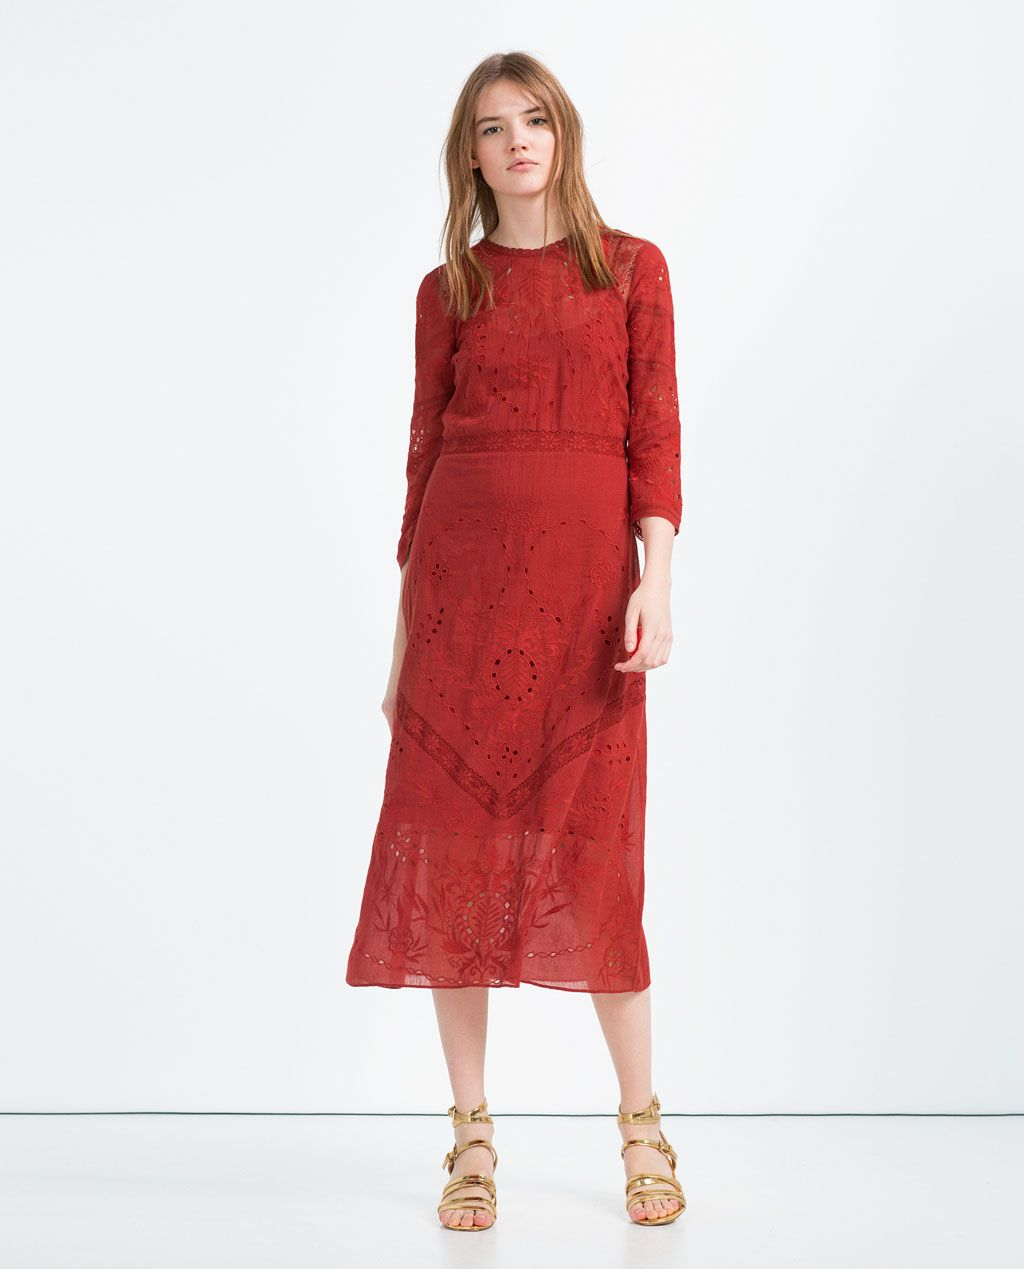 Embroidered dress dresses trf zara indonesia dresses embroidered dress dresses trf zara indonesia ombrellifo Choice Image